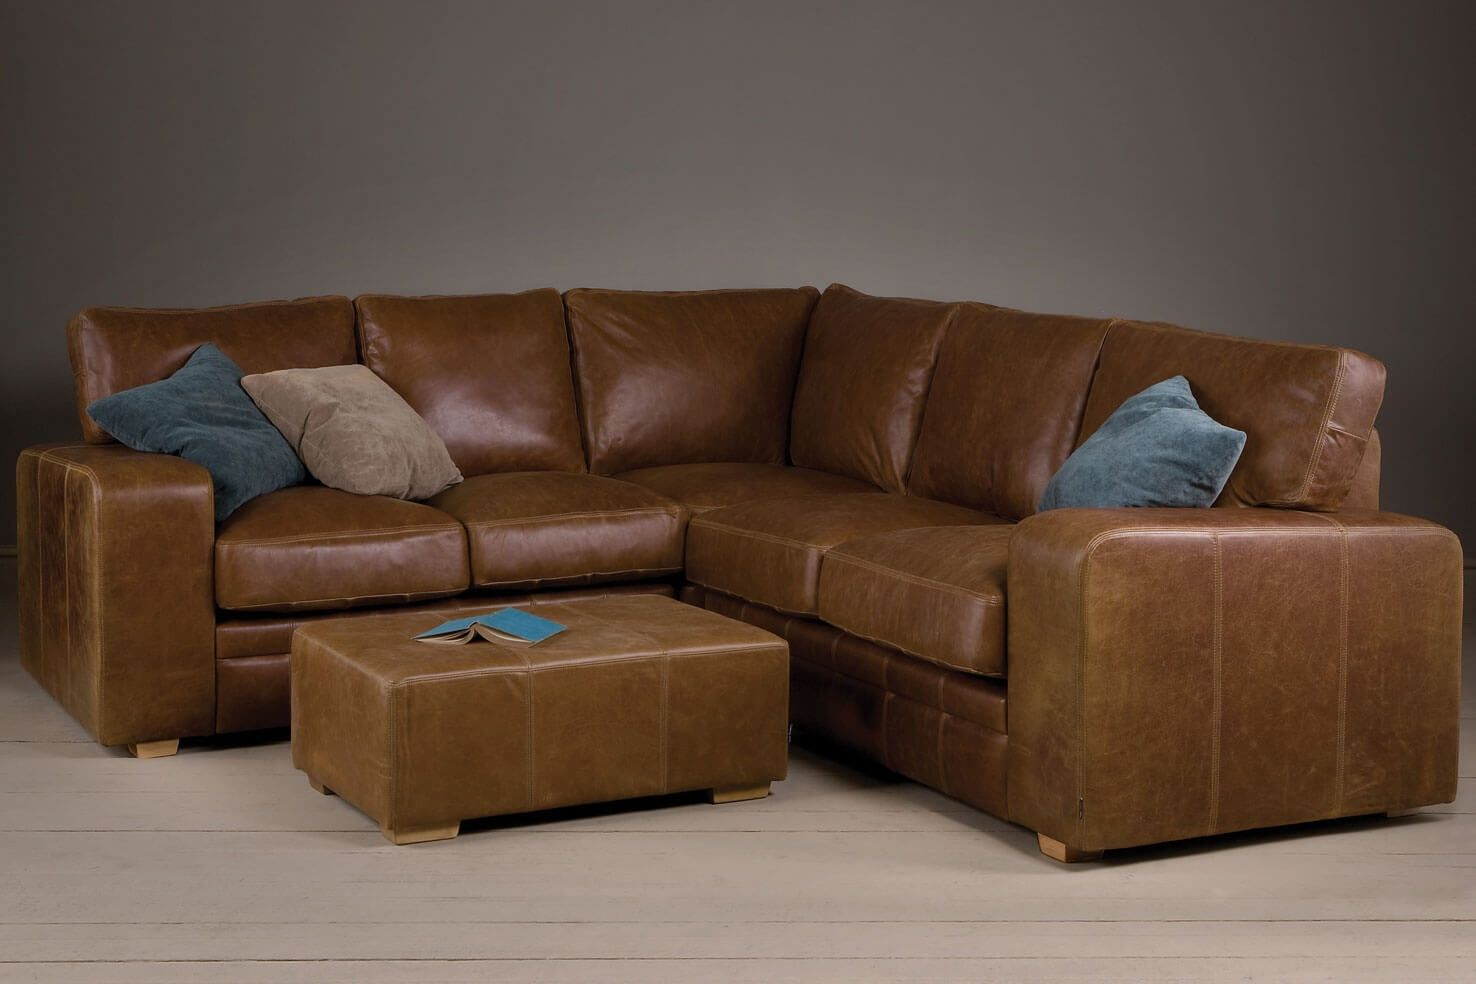 Broad Arm Leather Corner Sofa With A Footstool Leather intended for dimensions 1476 X 984